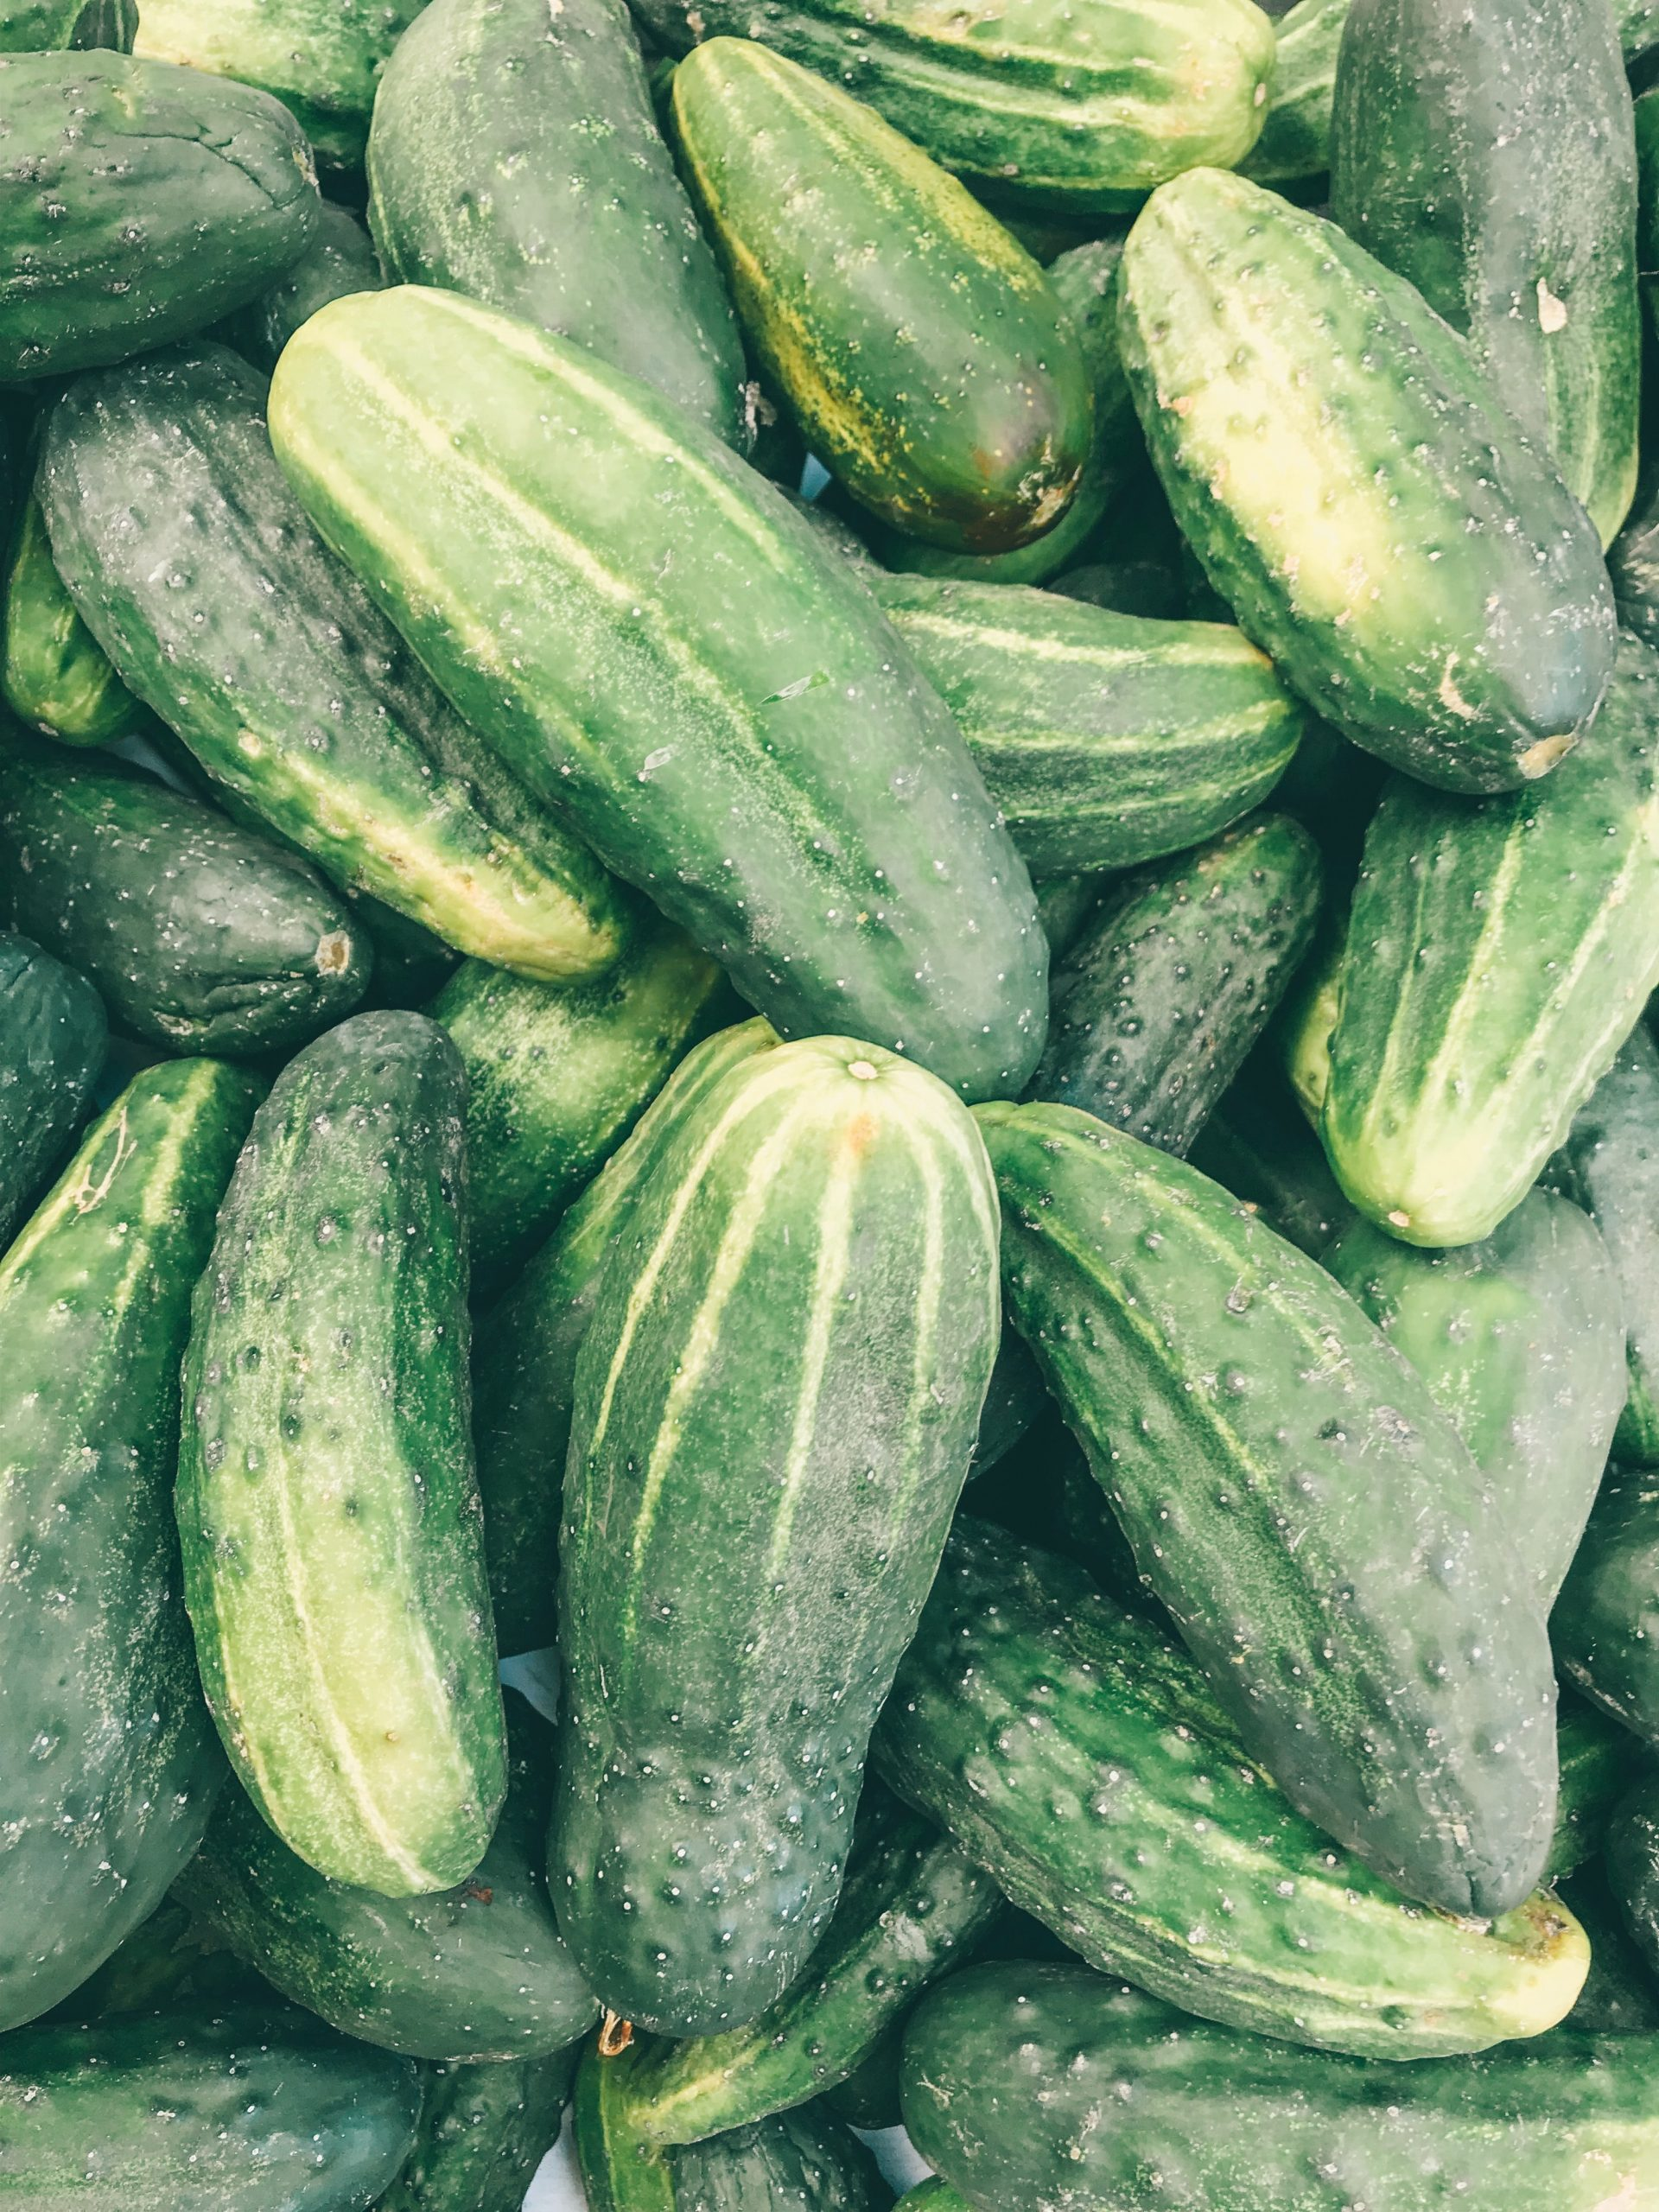 Large harvest of cucumbers